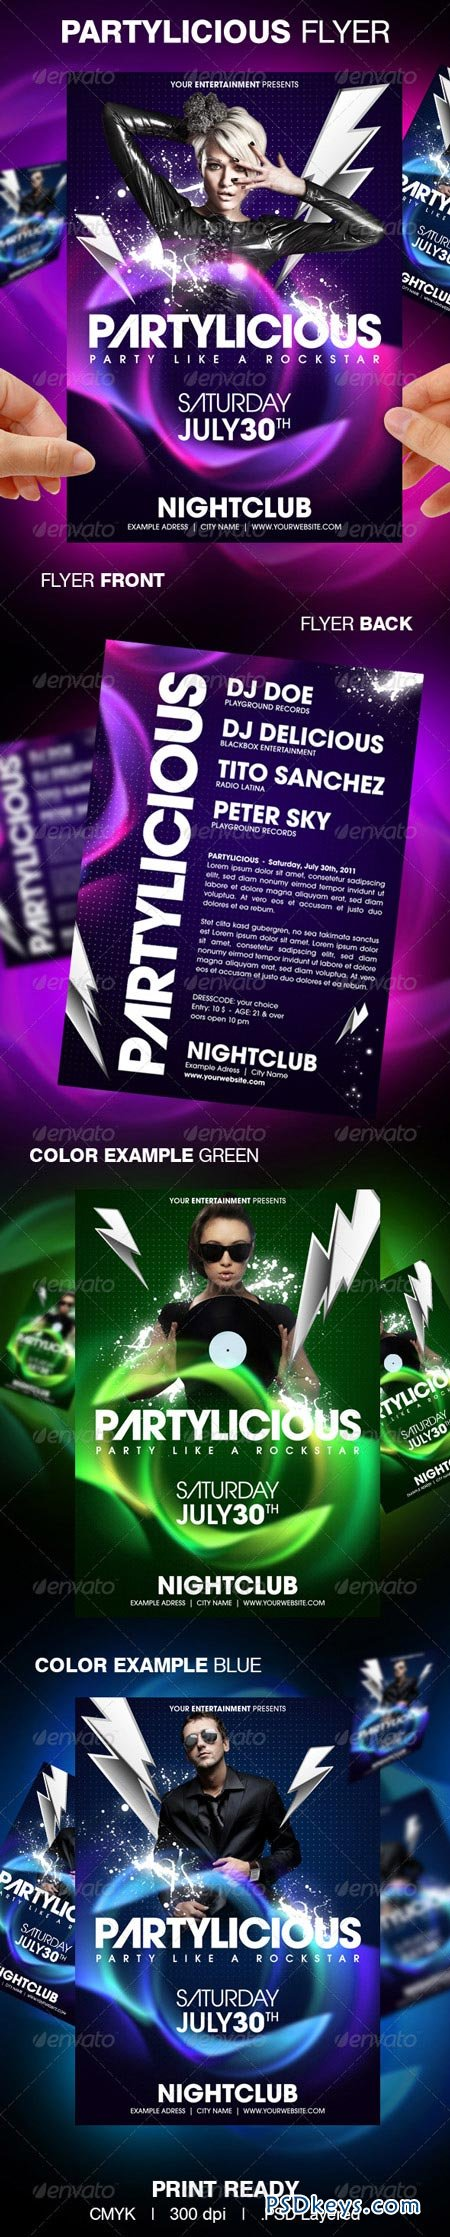 Partylicious Party Flyer 160229